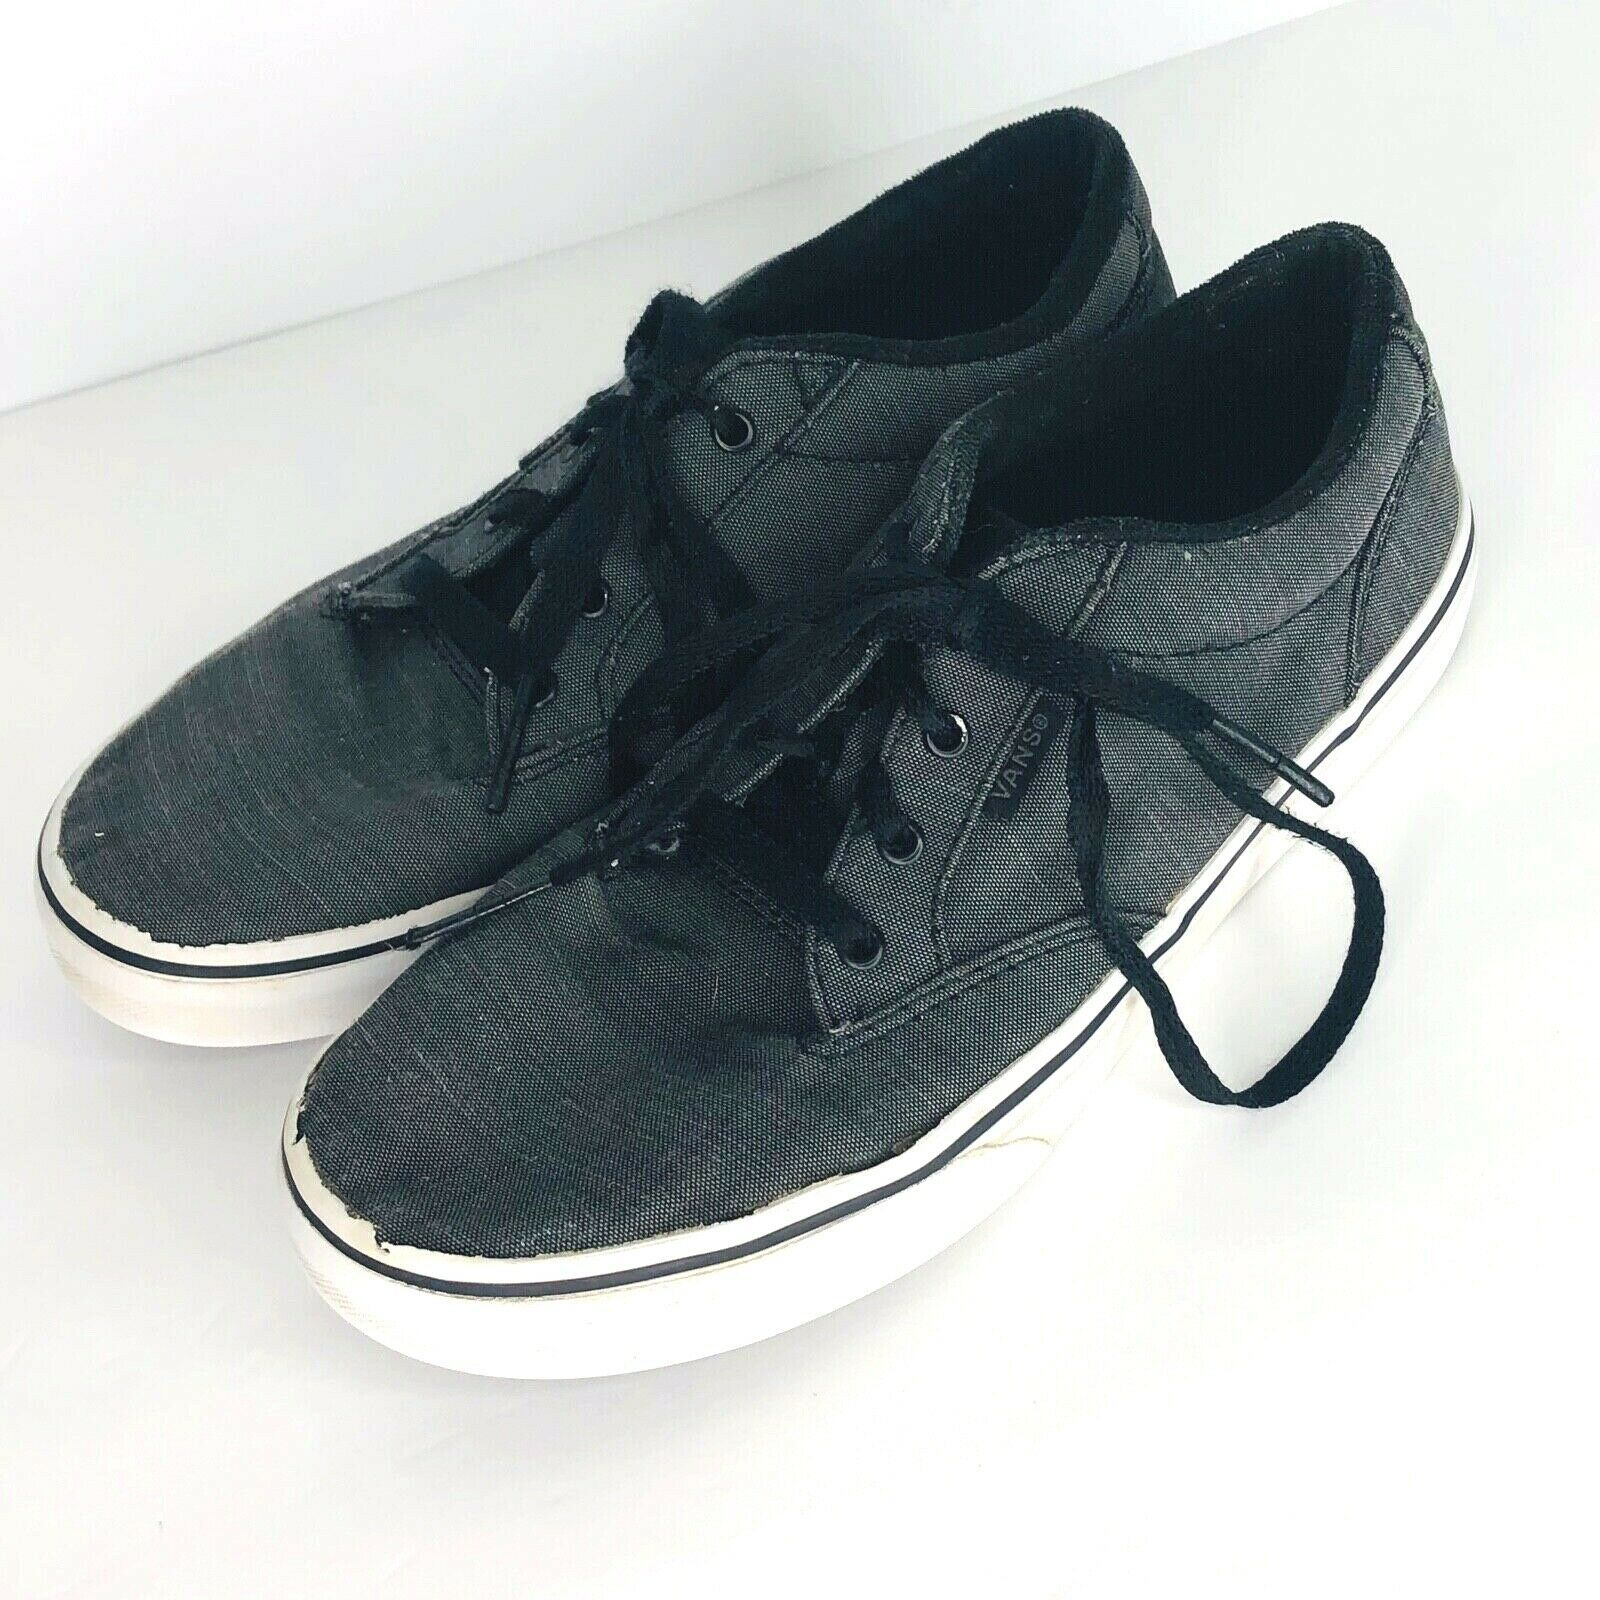 Primary image for Vans Off the Wall Youth Gray Canvas Skate Shoes Size 5 Sneaker Tennis Shoe